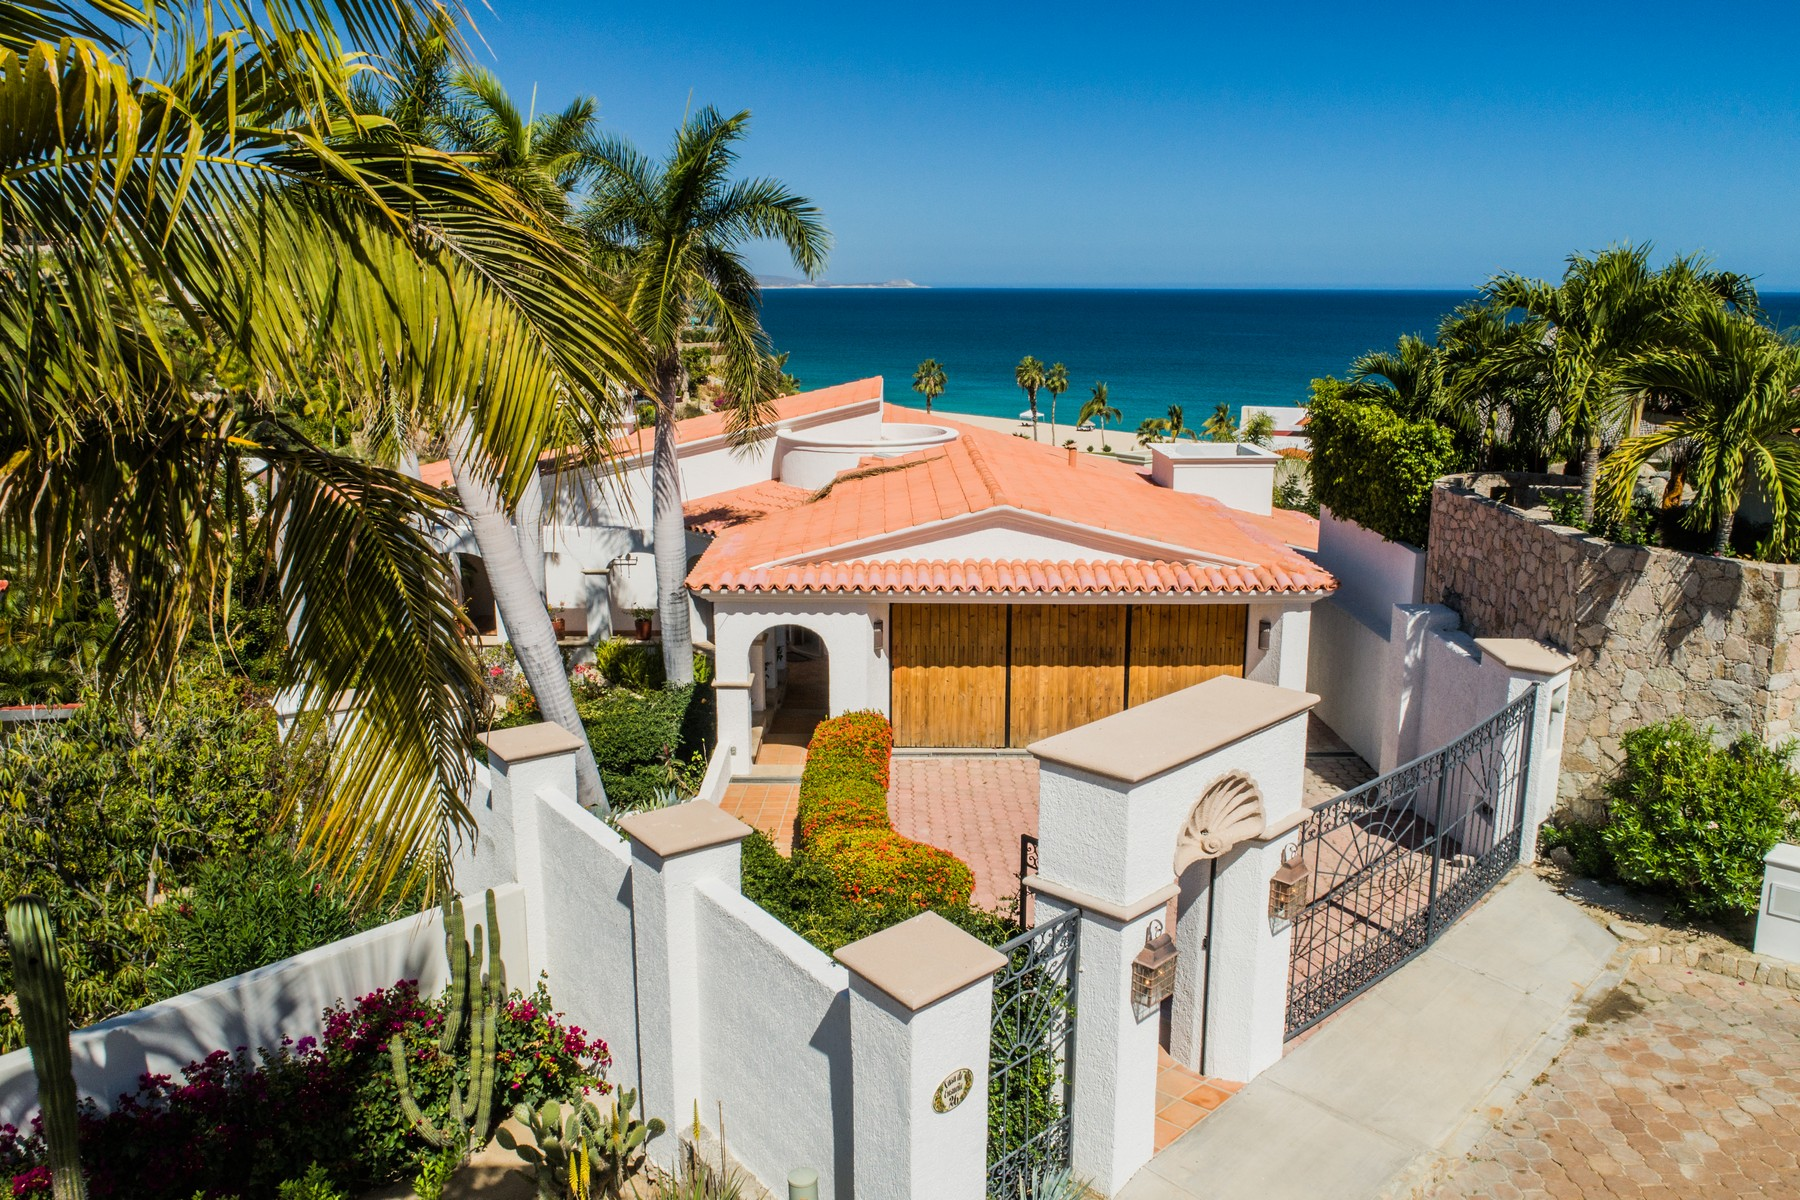 Single Family Home for Sale at Casa Ensueño 26 Palmilla Norte San Jose Corridor San Jose Del Cabo, 23406 Mexico